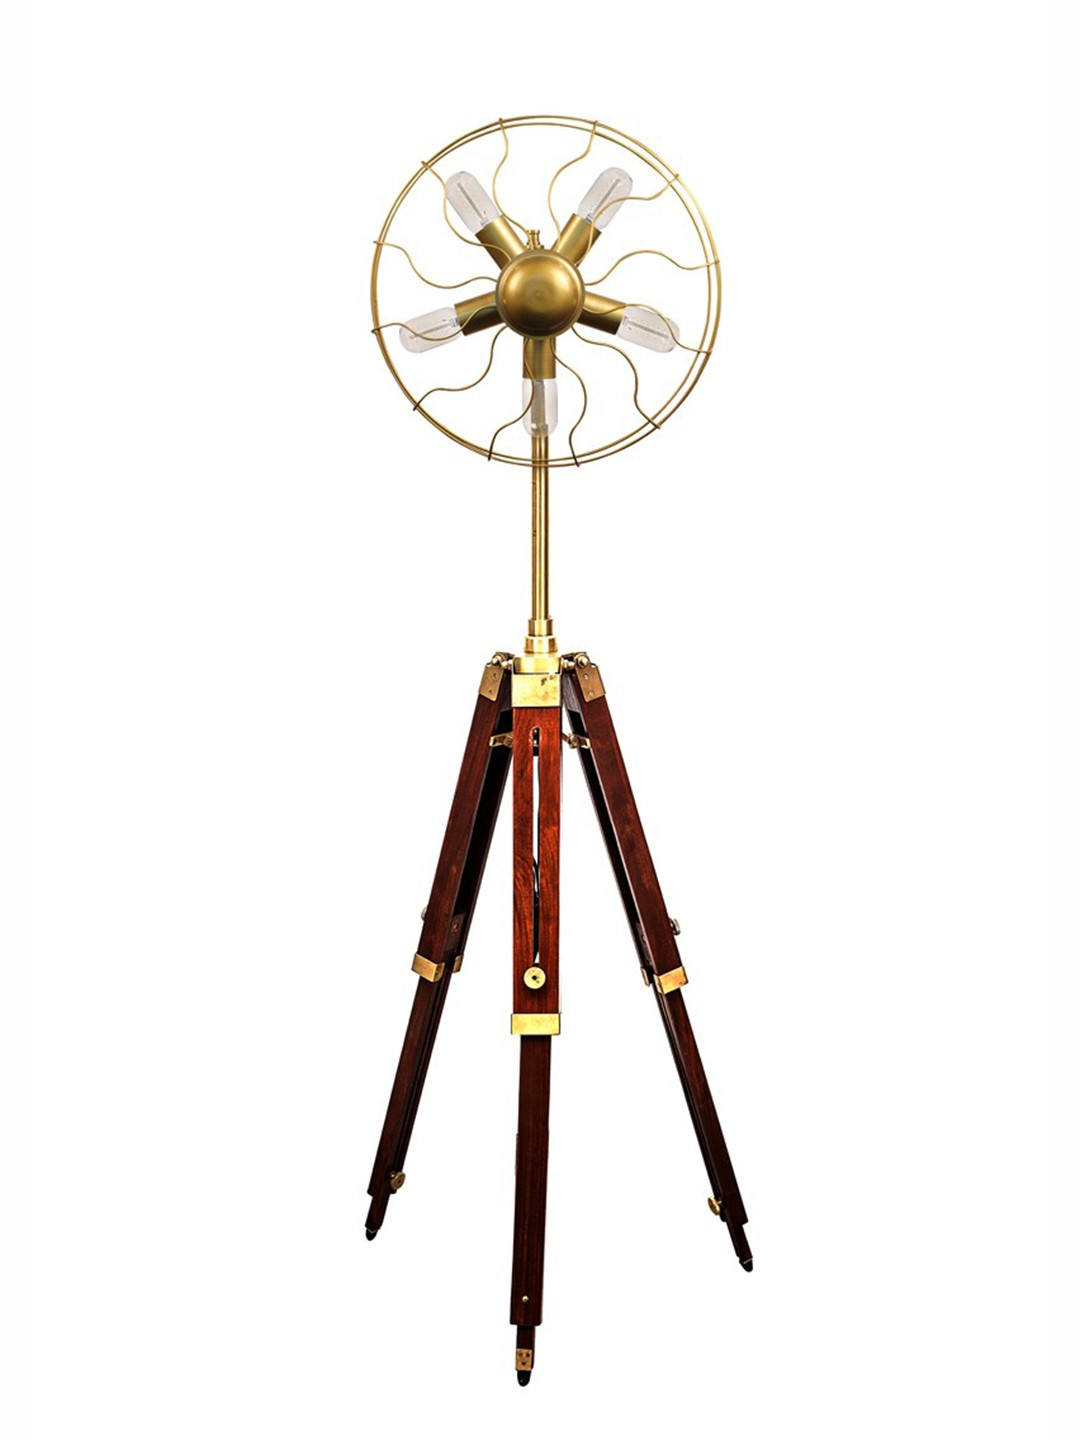 Vintage Tripod Fan 5 Light Floor Lamp